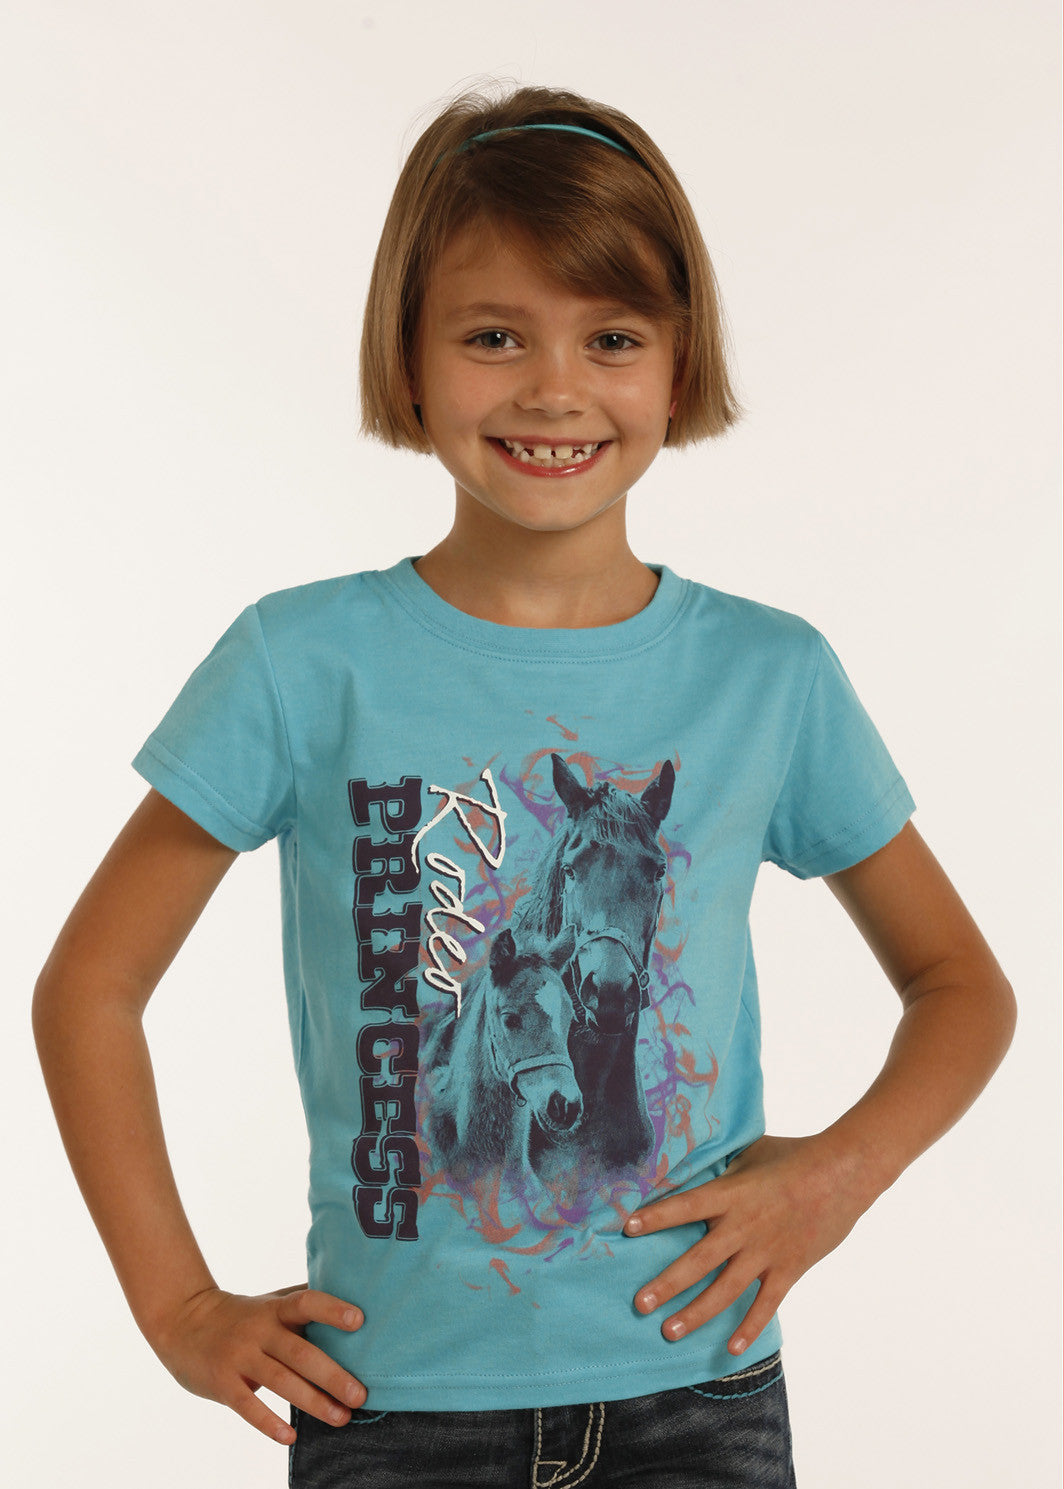 Panhandle Slim Girl's Horse Graphic Tee